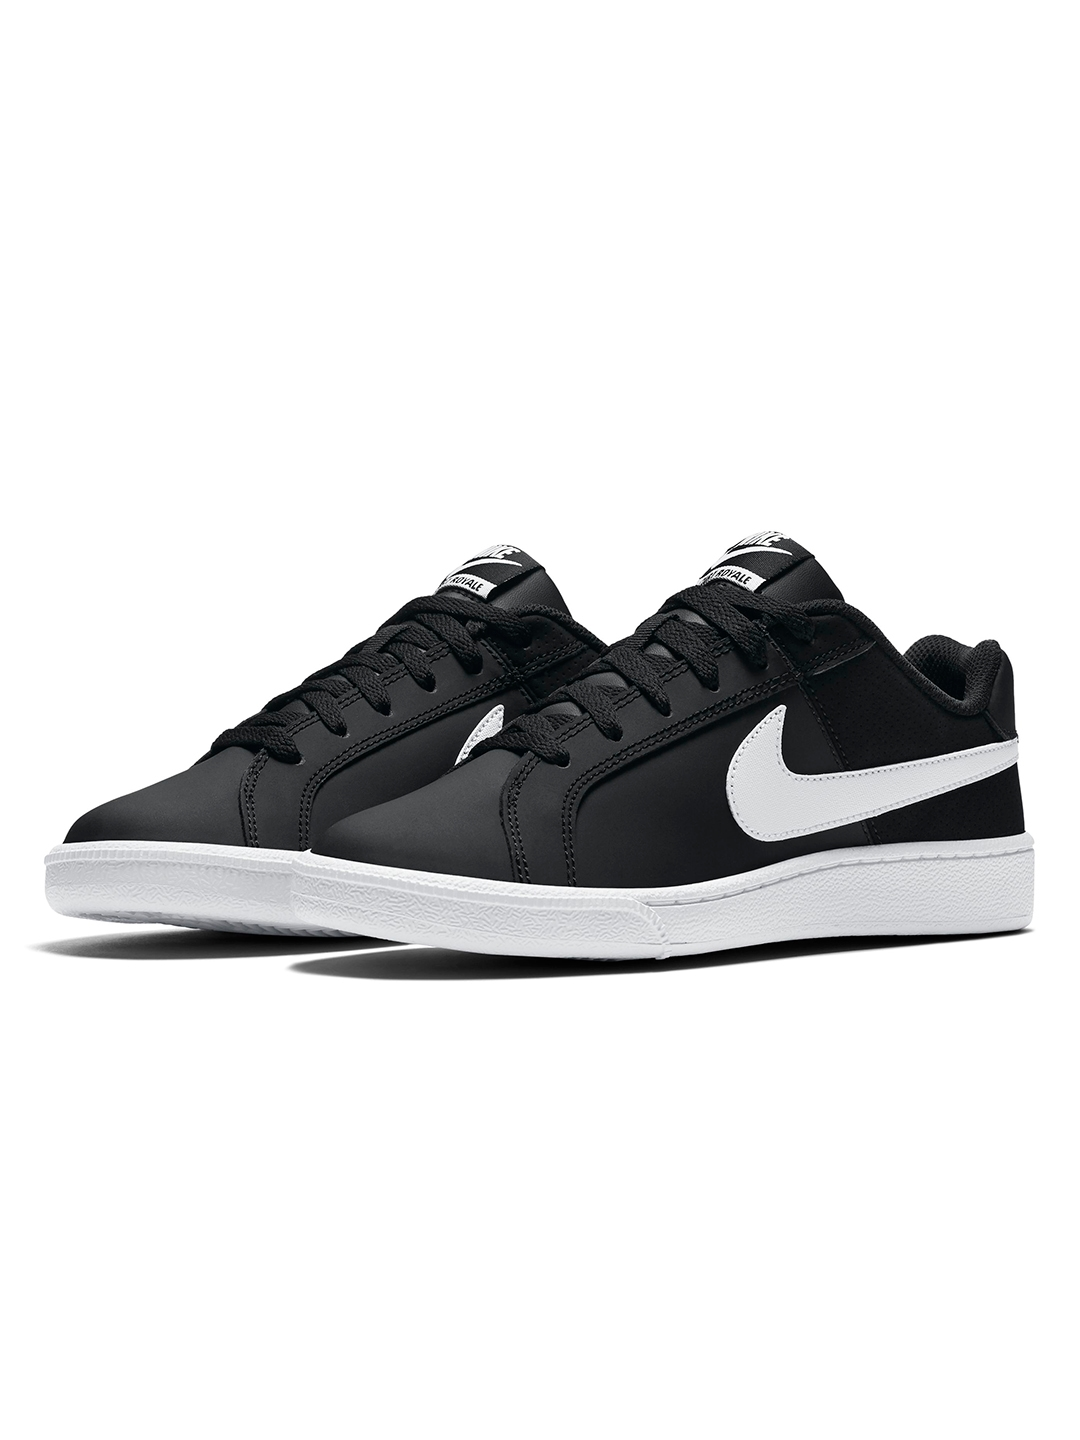 Buy Nike Women Black Court Royale Sneakers - Casual Shoes ...